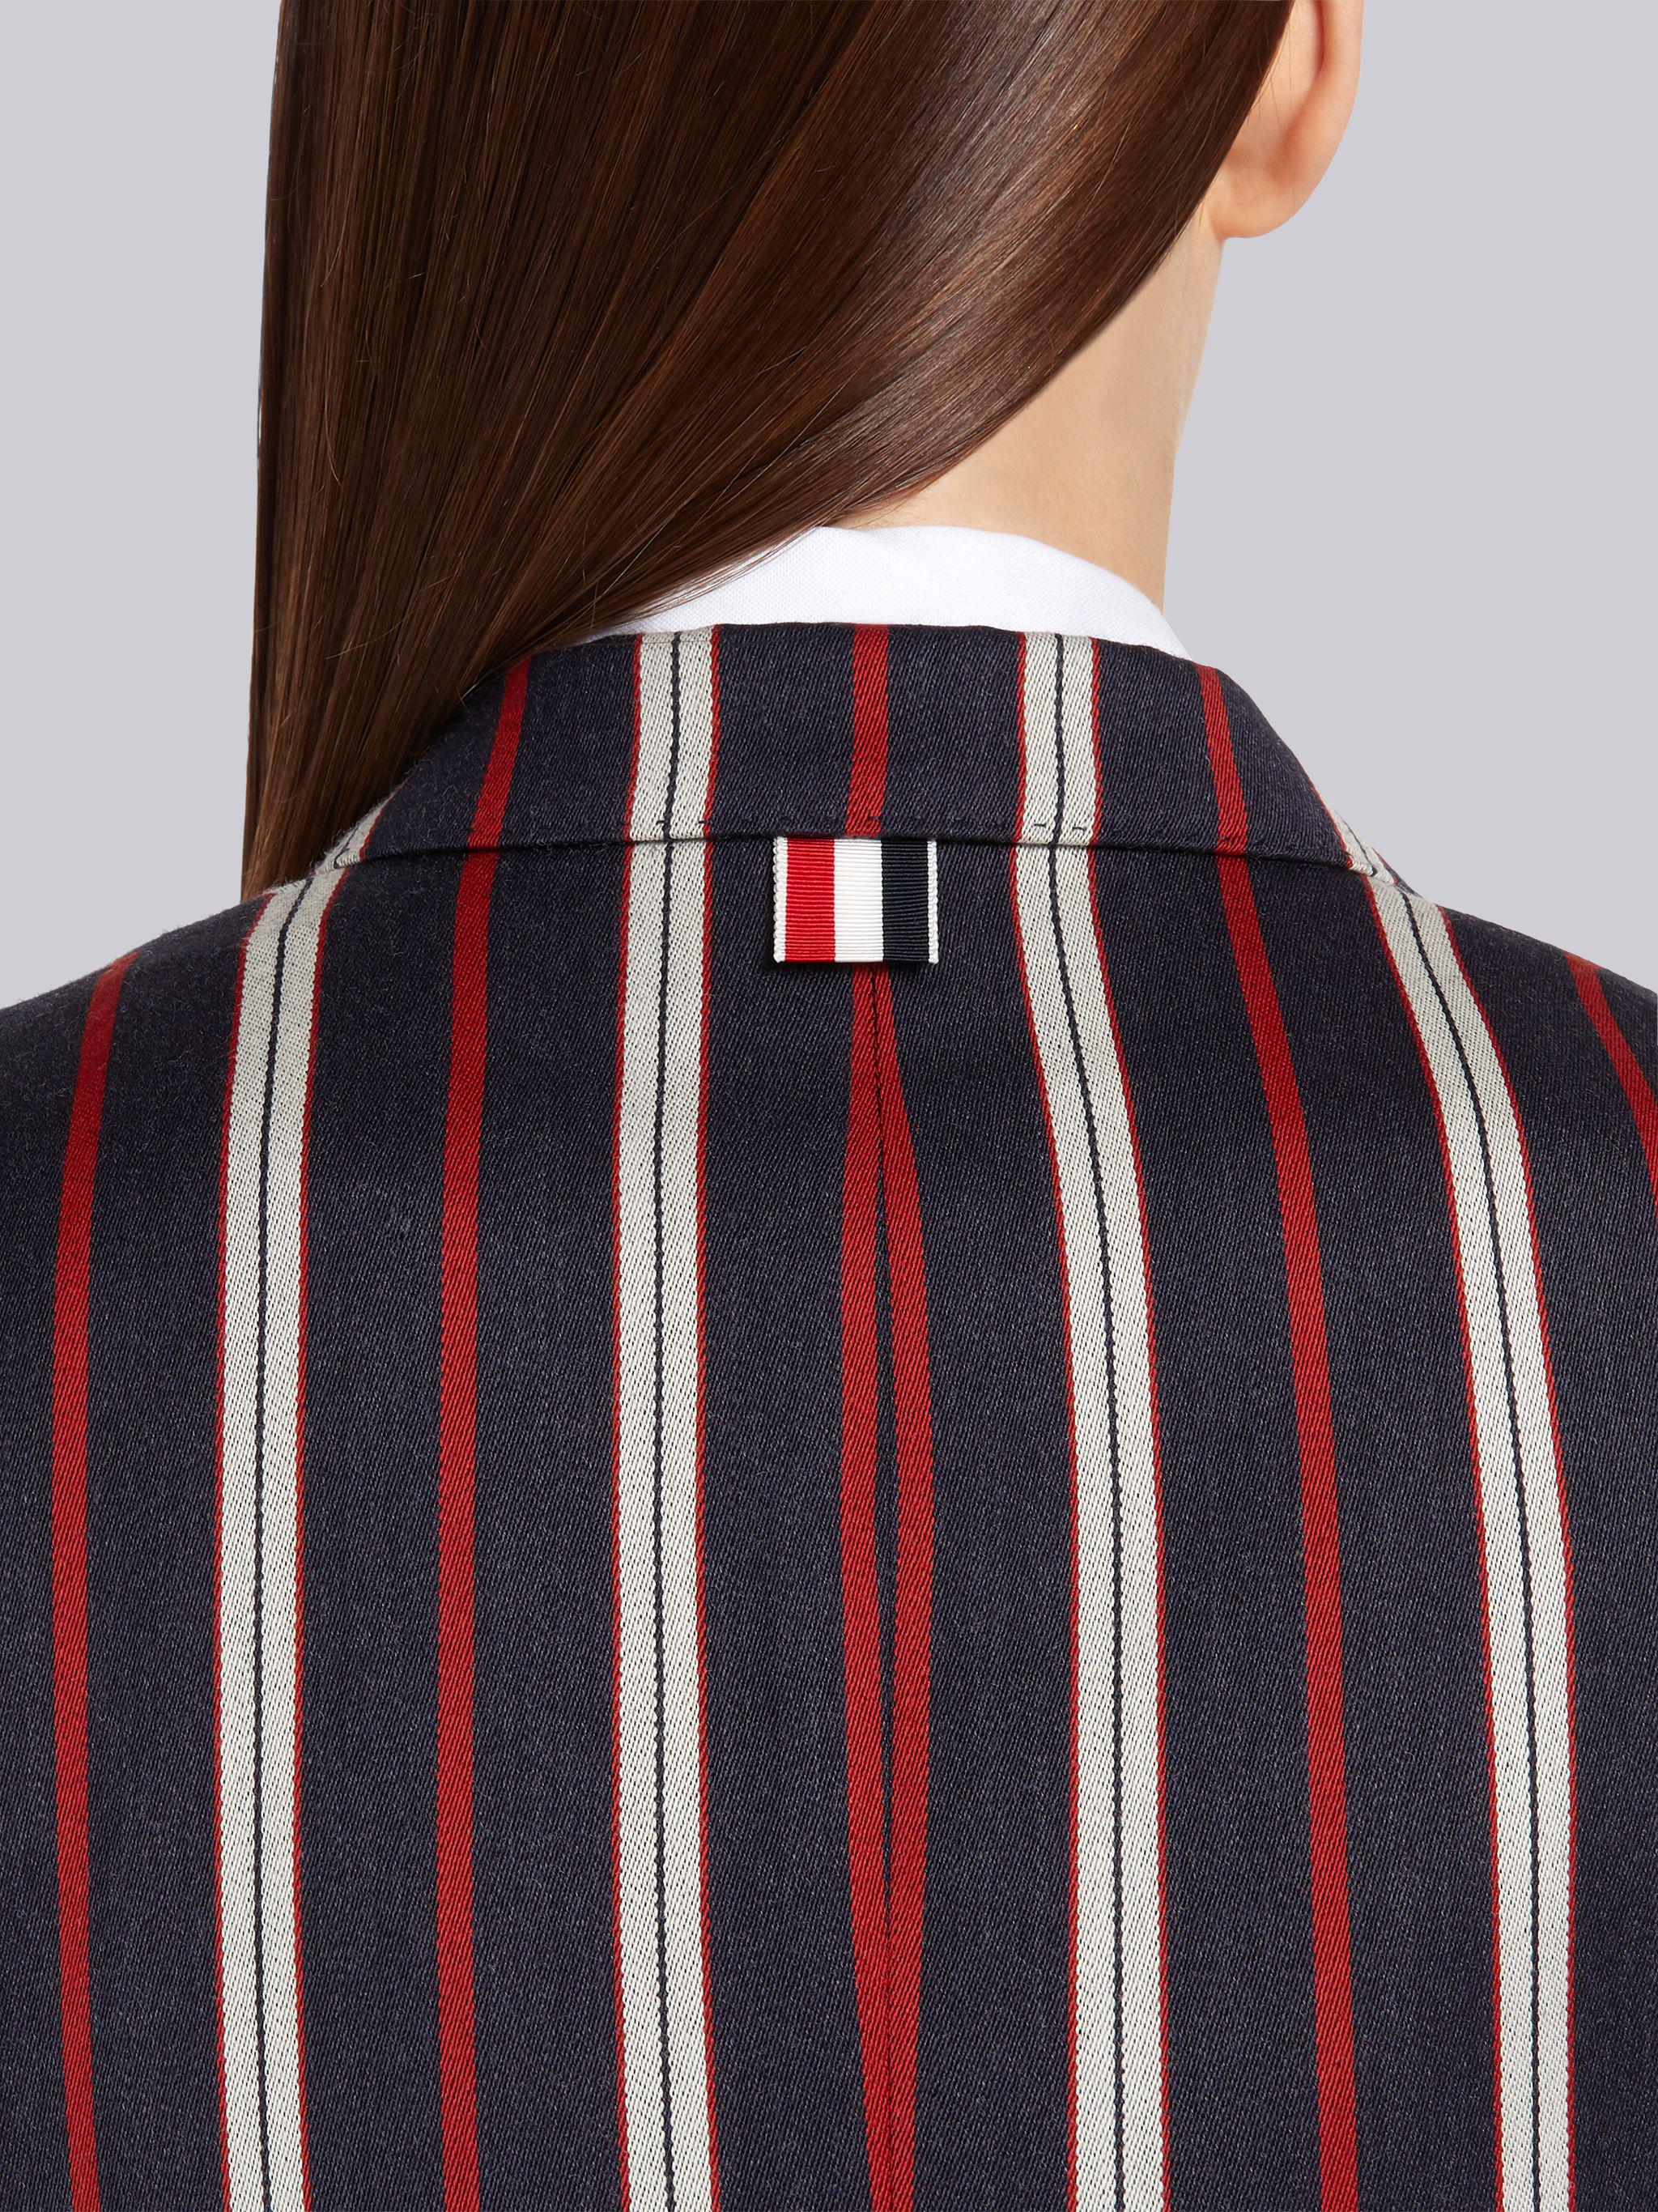 Multi-Color Wool Cotton Suiting Variegated Rep Stripe High Armhole Jacket 4